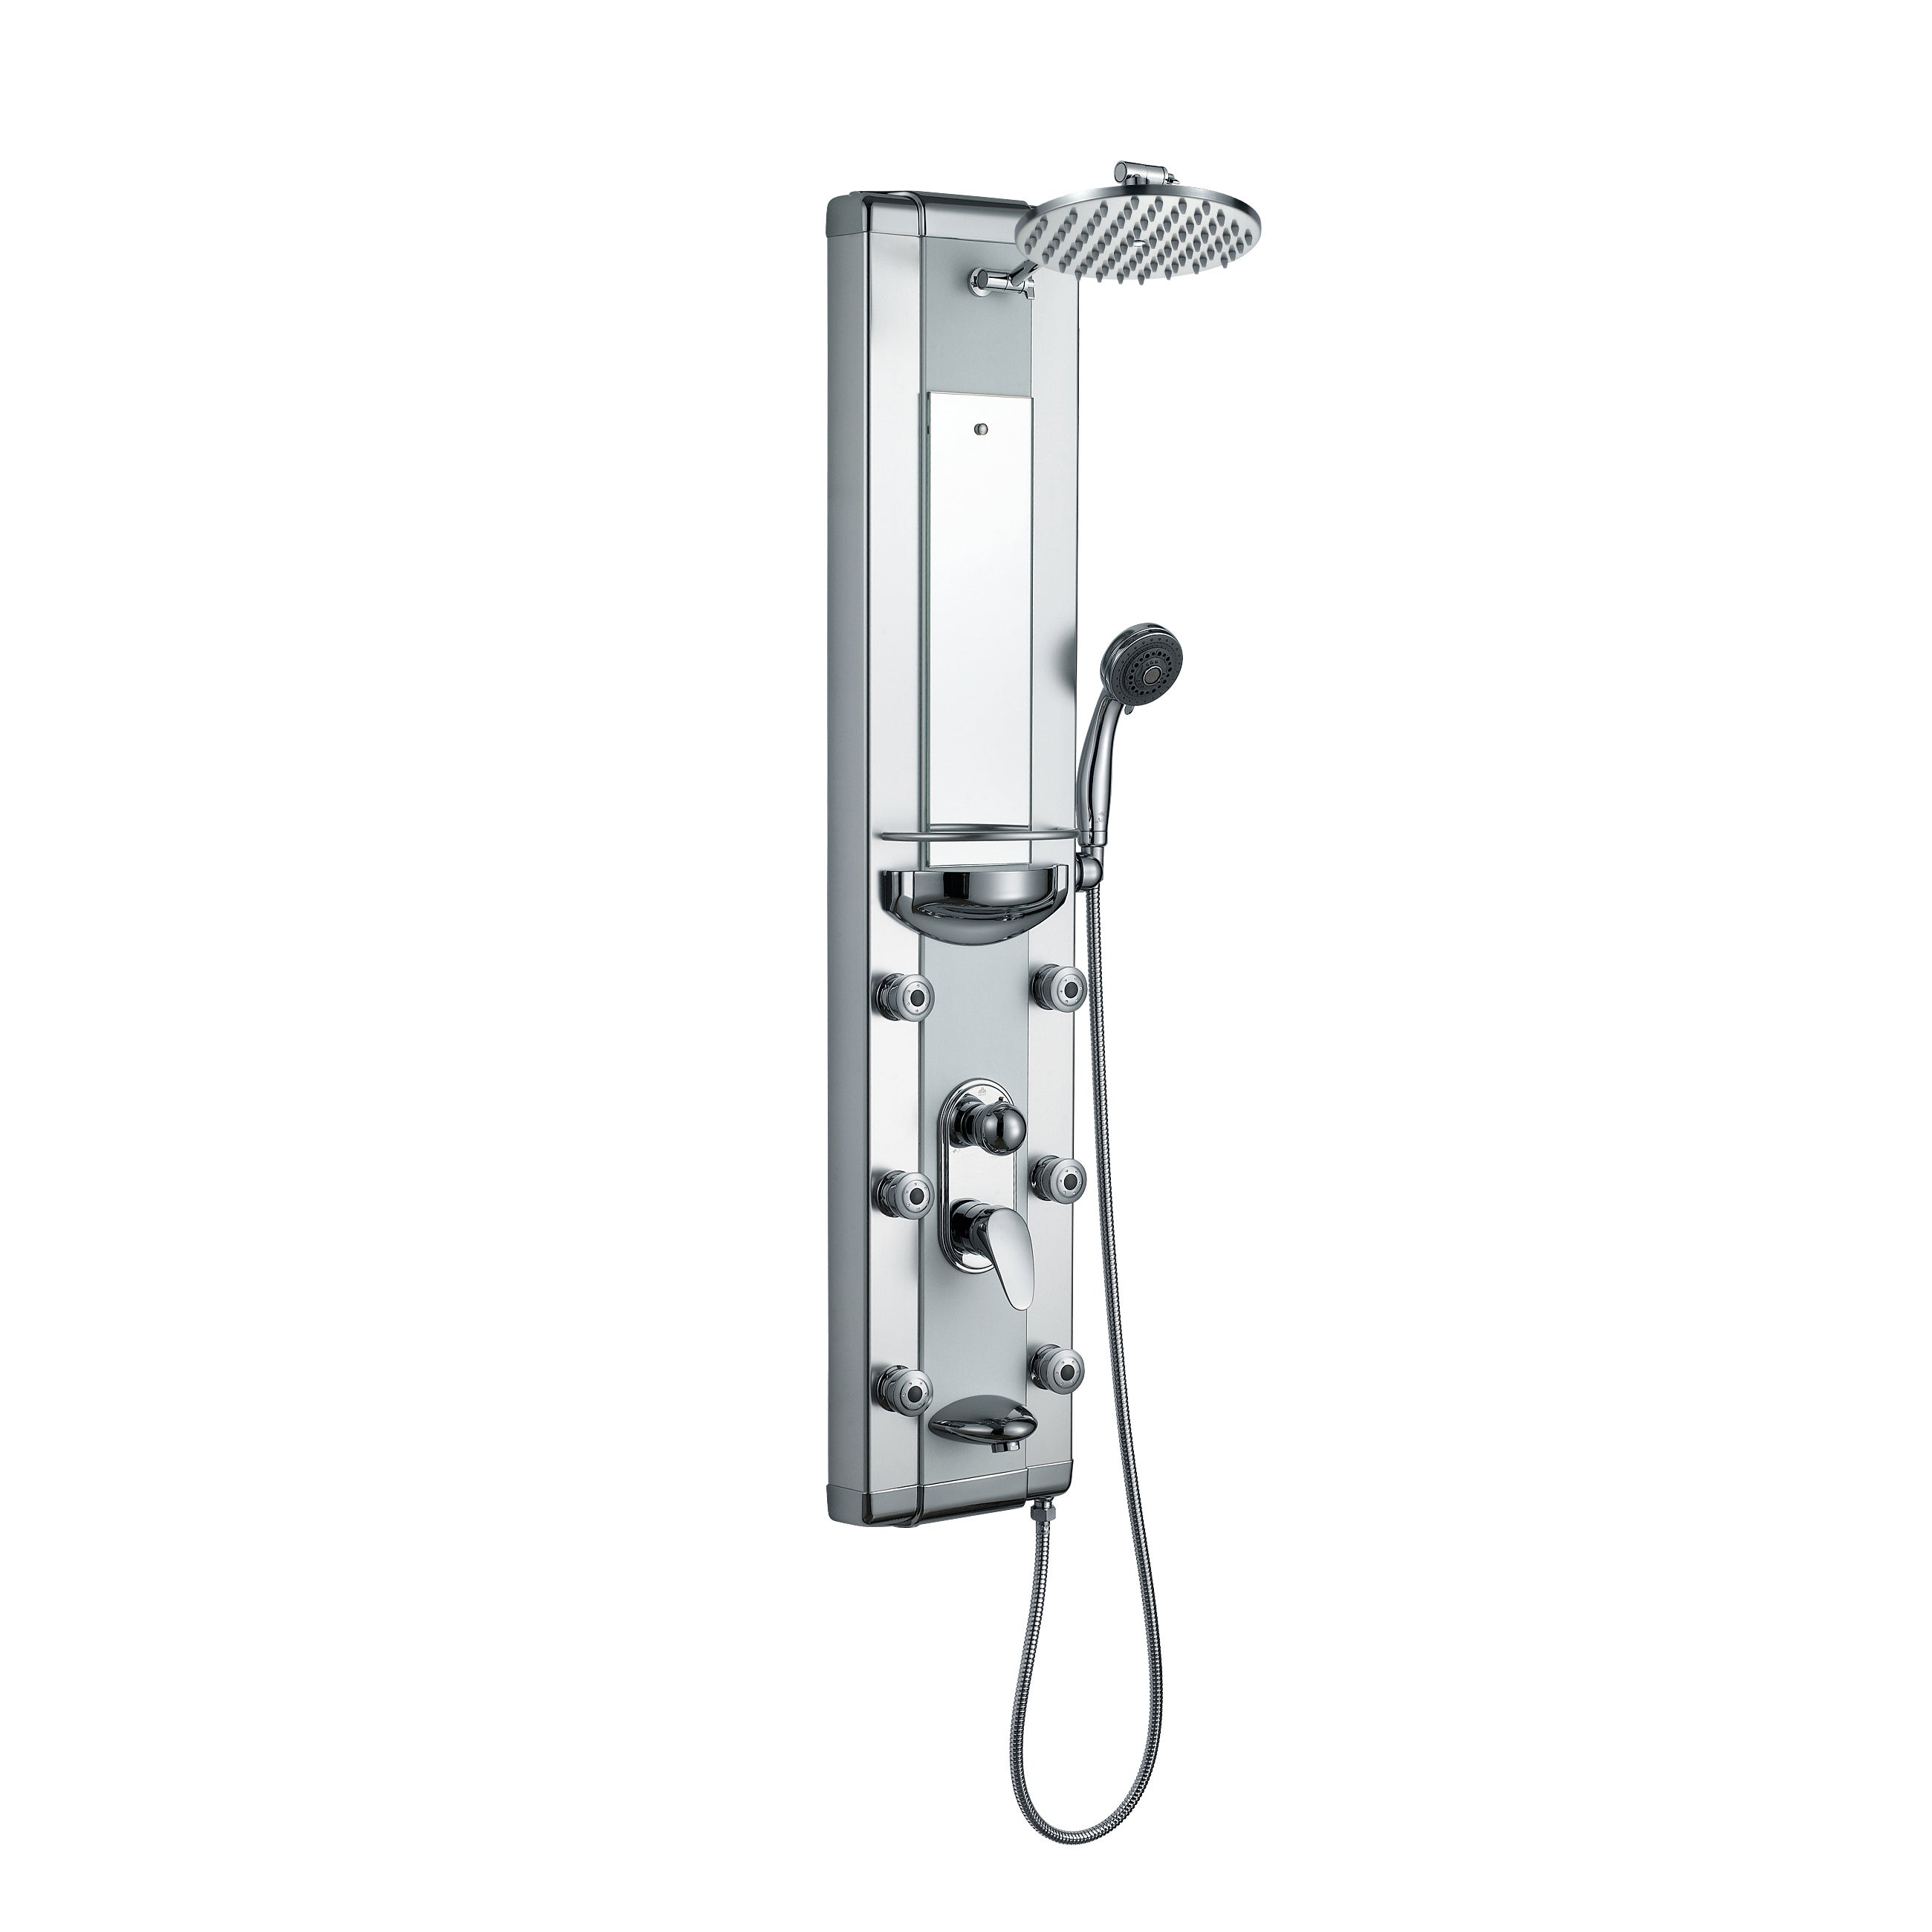 Blue Ocean Aluminum Shower Panel Tower With Rainfall Shower Head Mist Nozzles Handheld Shower Head And Tub Spout Silver